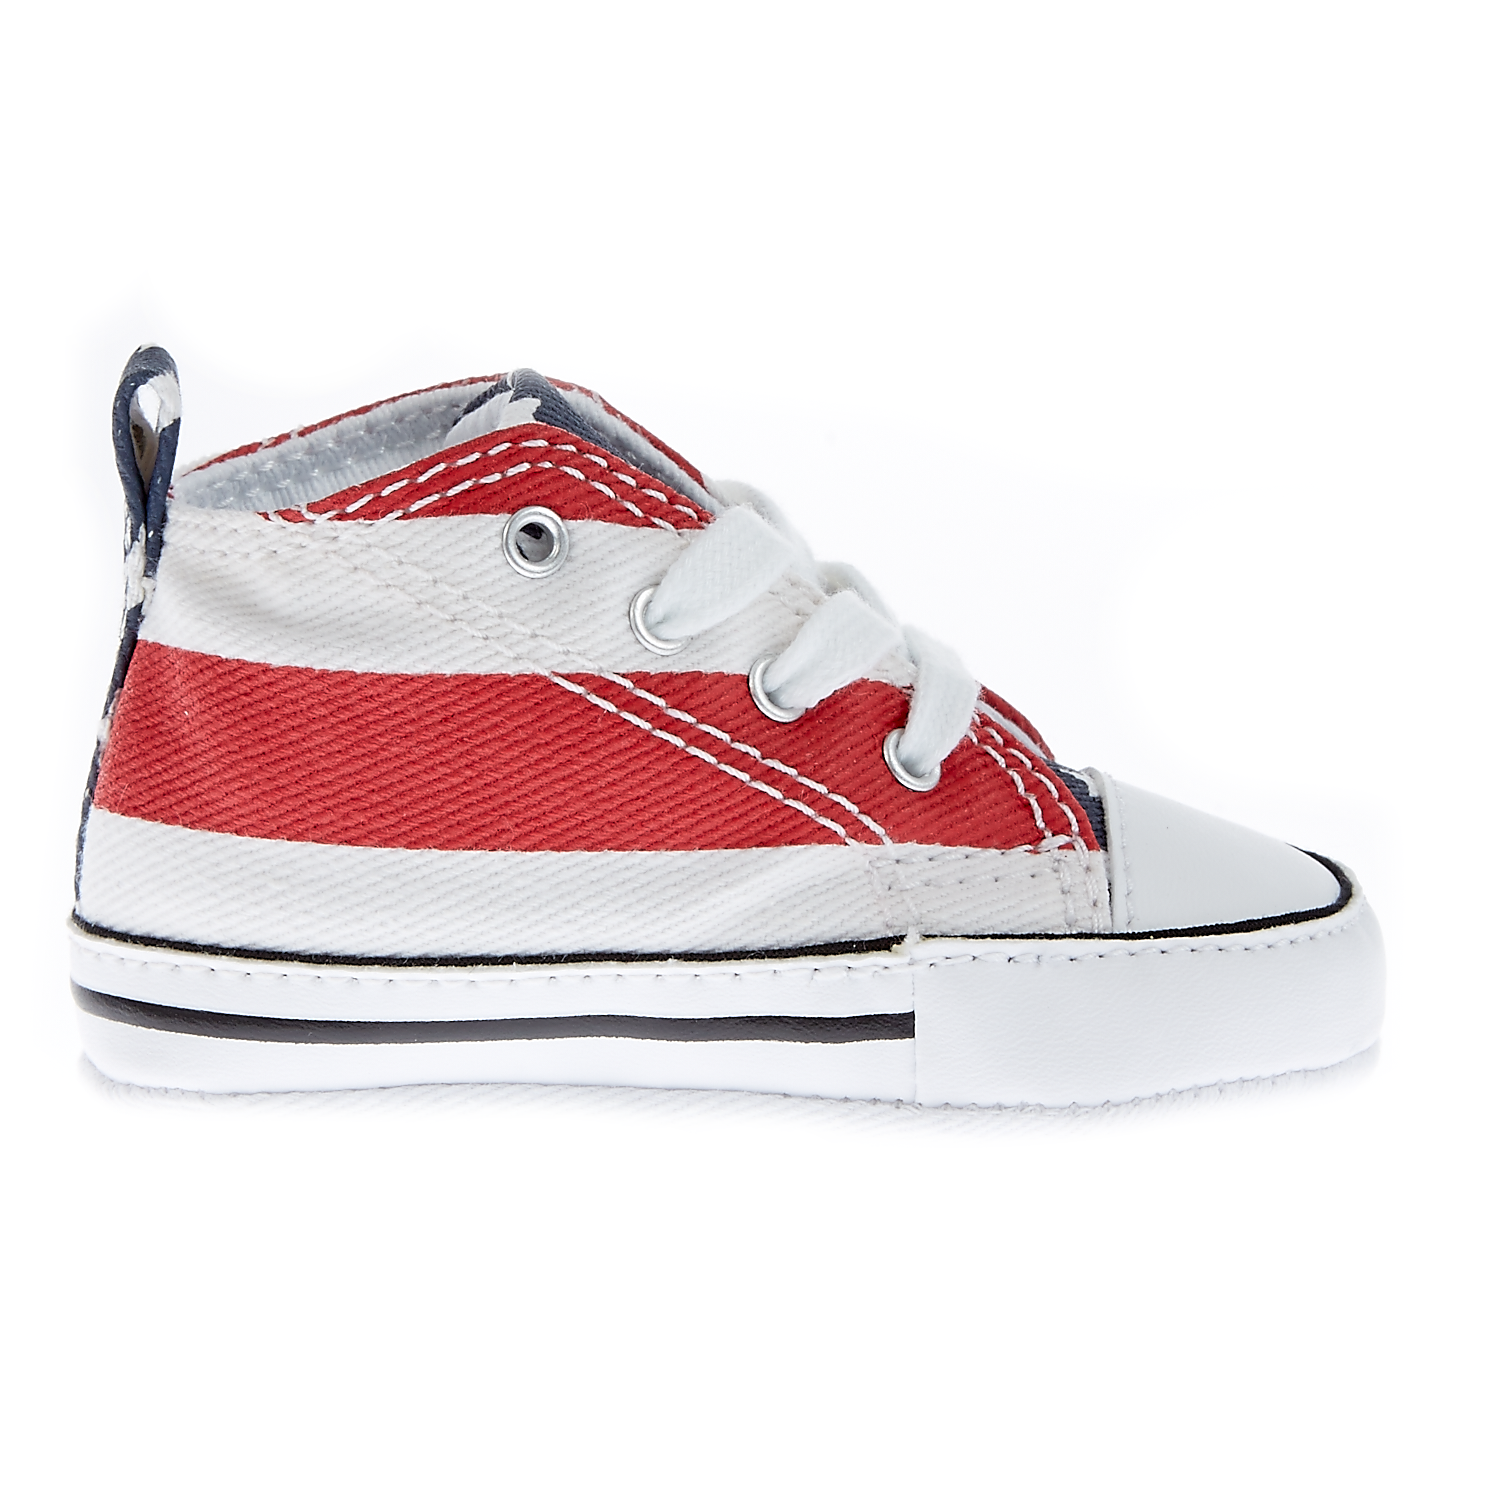 CONVERSE – Βρεφικά παπούτσια Chuck Taylor λευκά